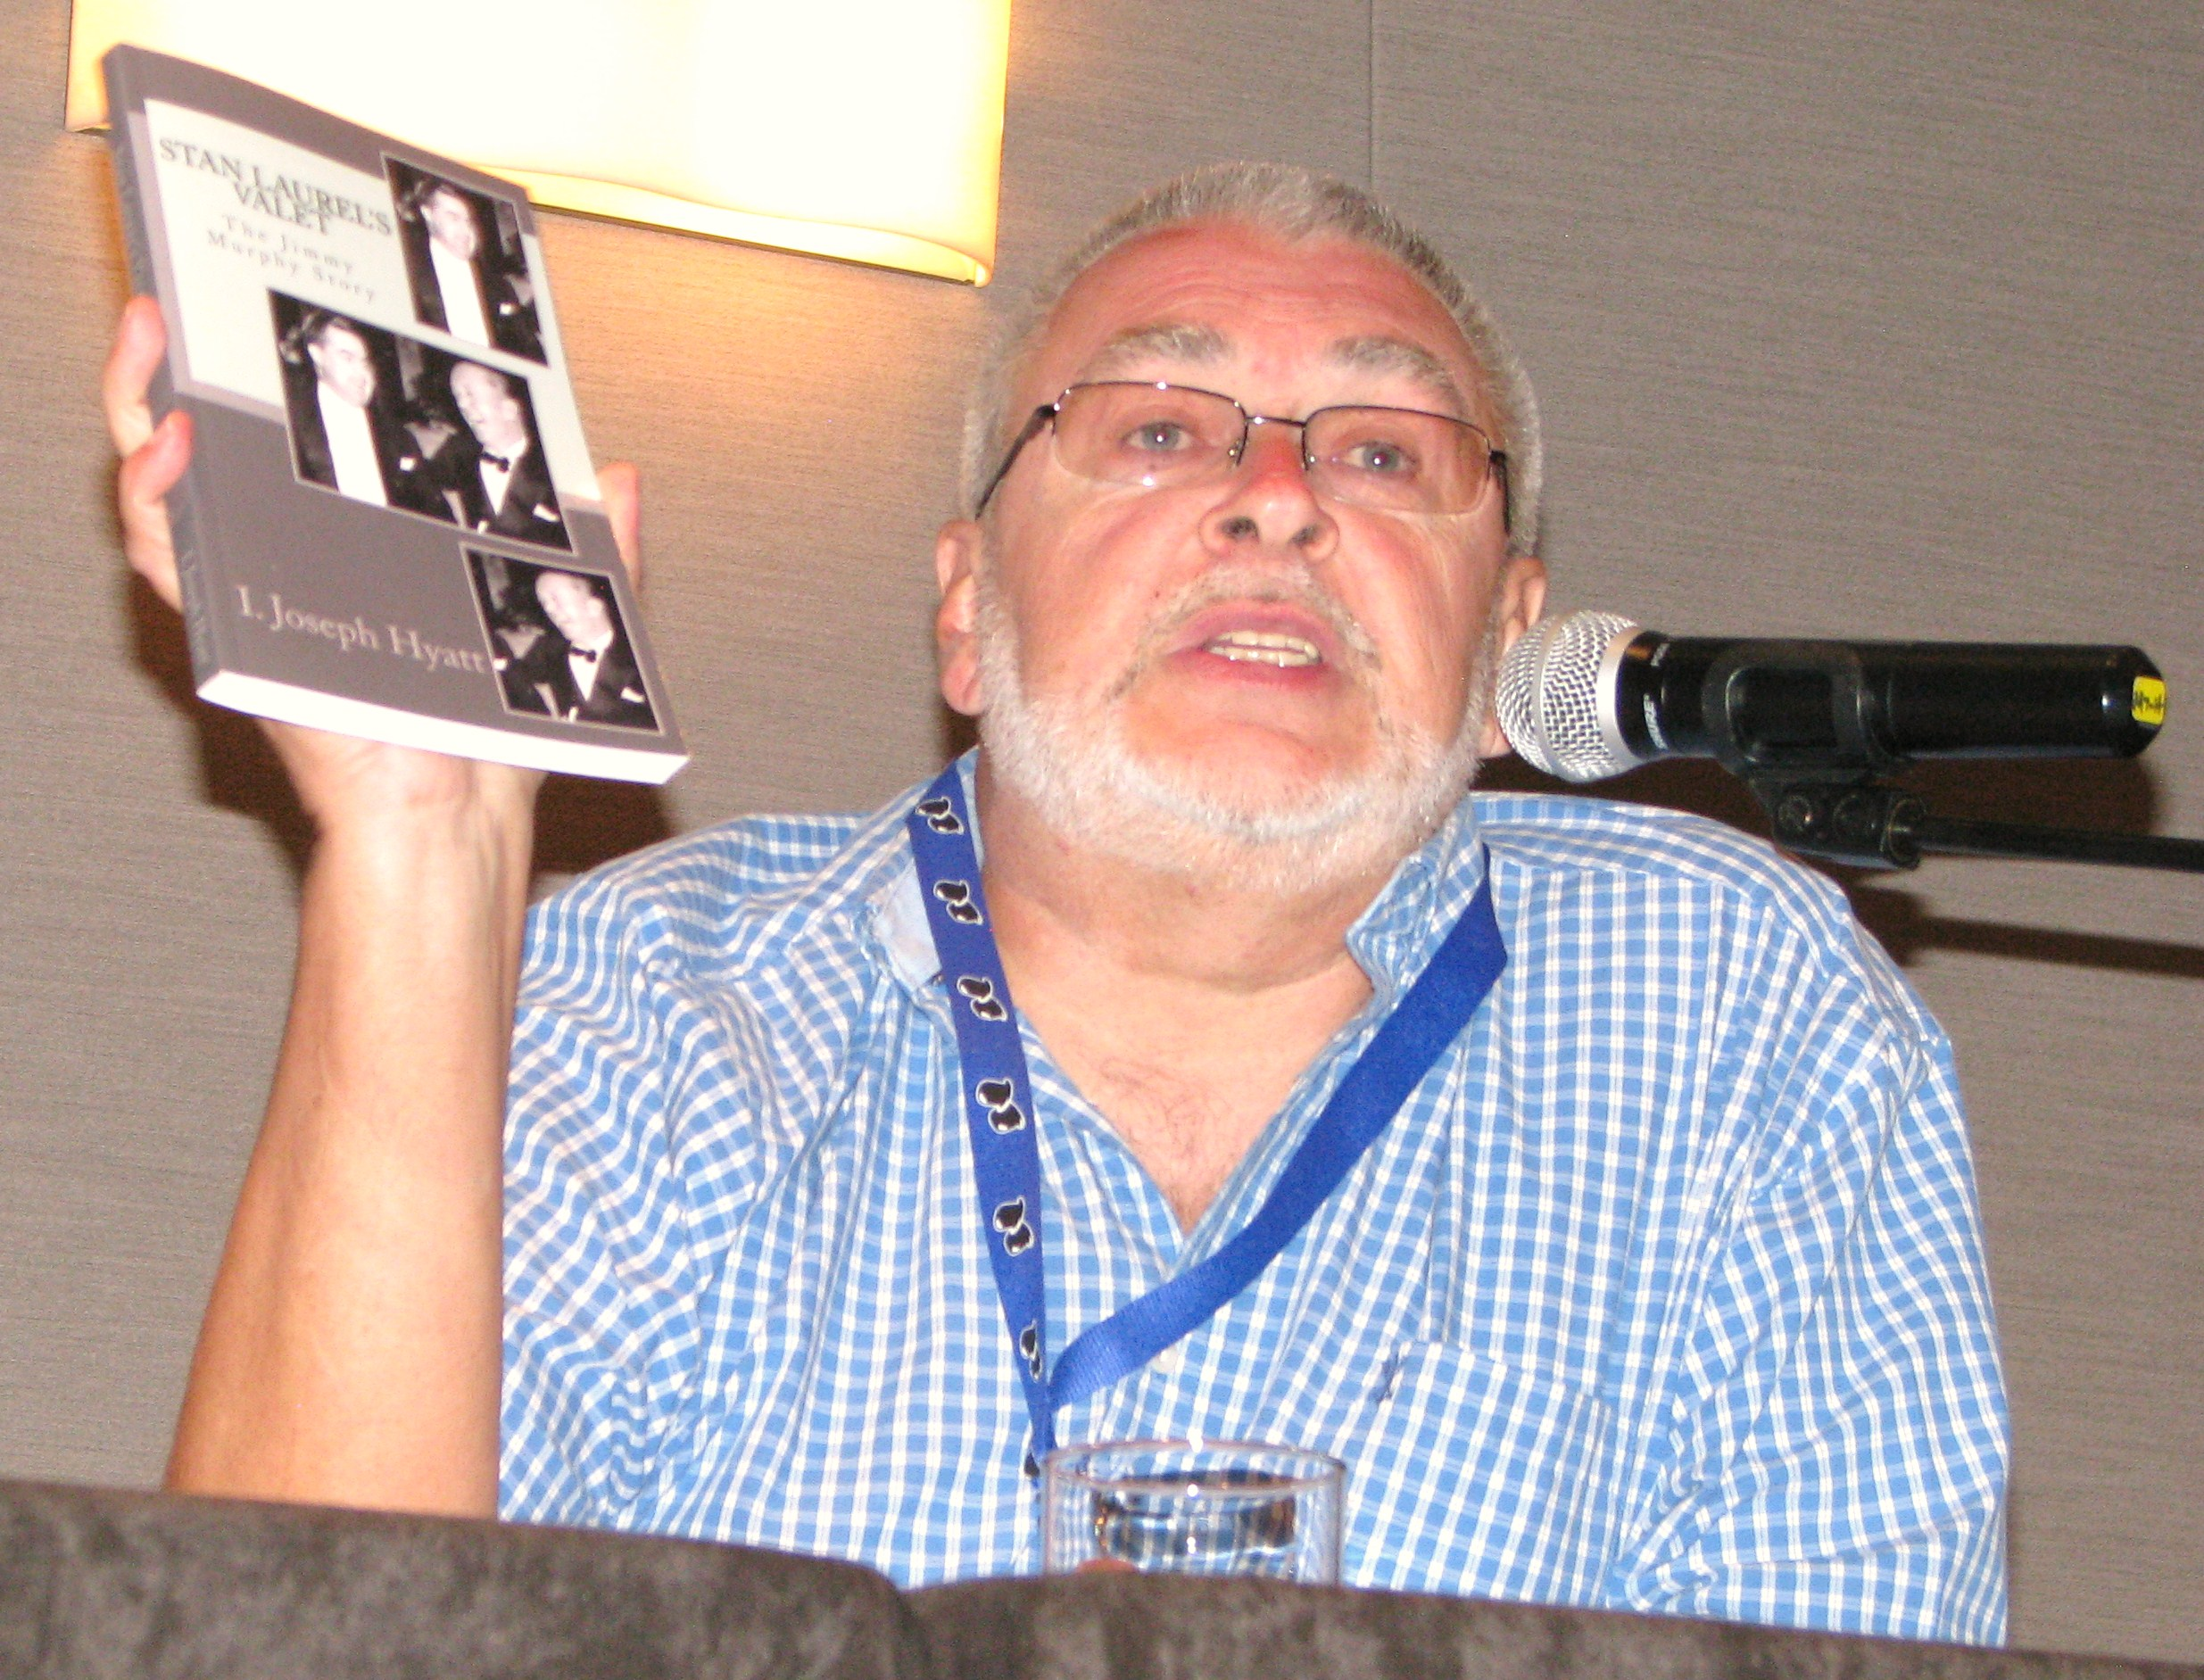 Irv Hyatt shows off one of his books.